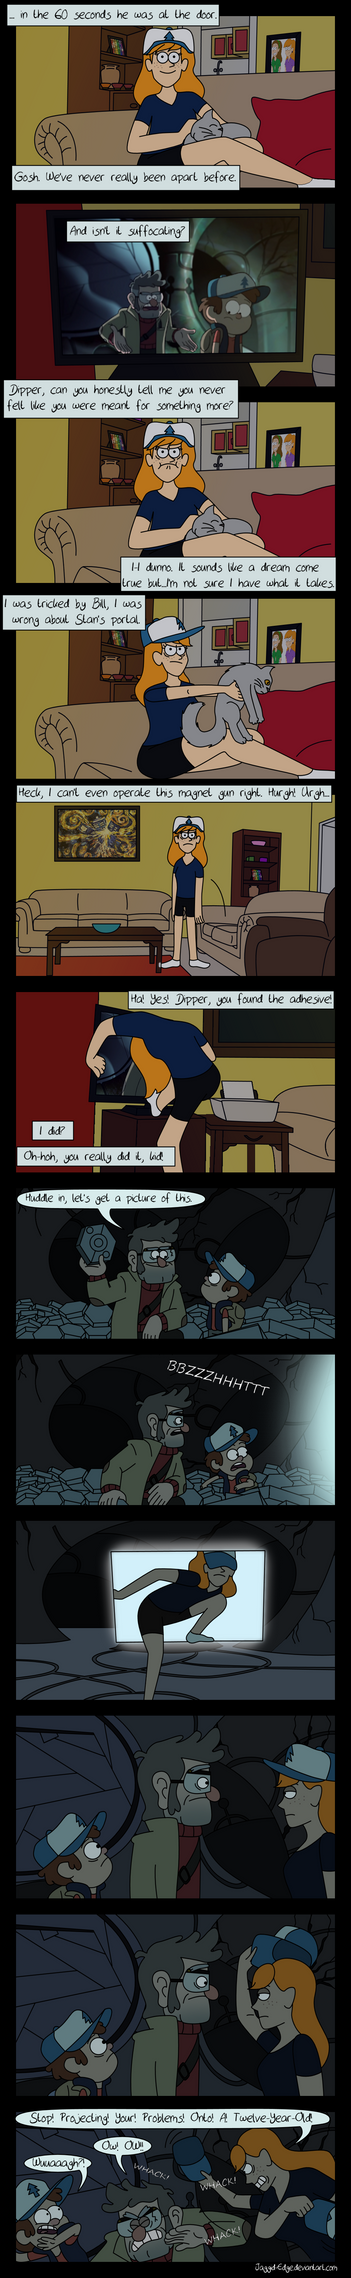 Reaction - Dipper and Mabel Vs. The Future by Jaggid-Edge